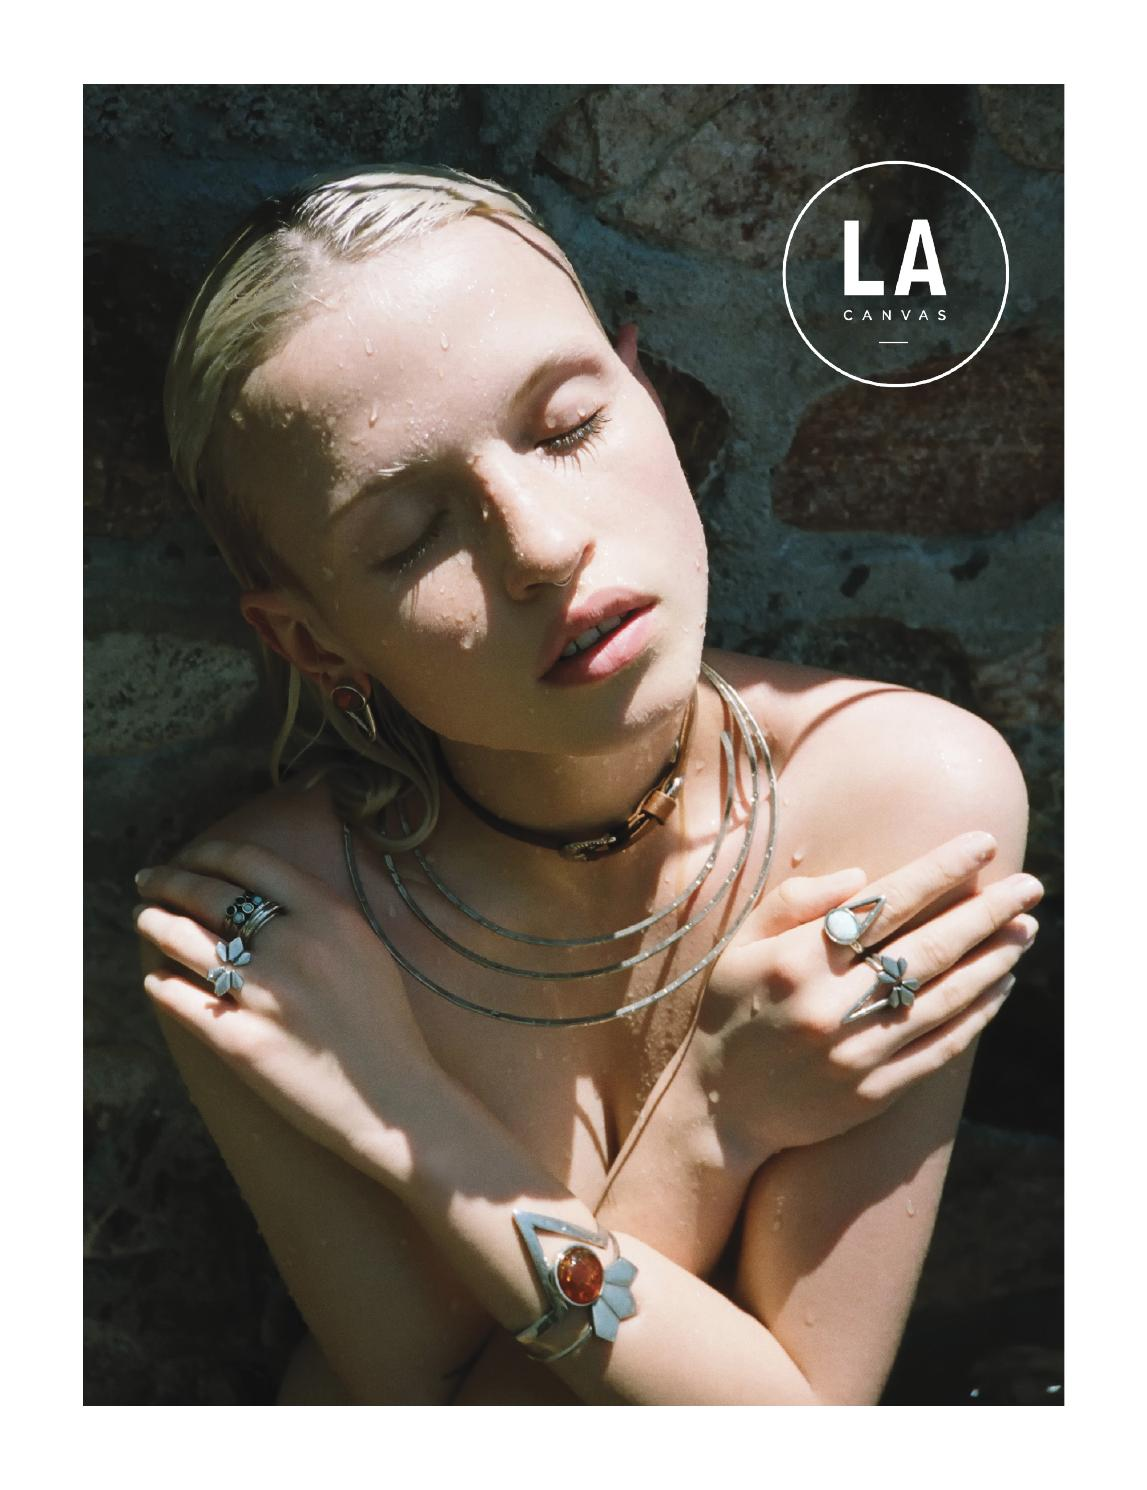 La canvas the hydration issue july august 2013 by la canvas issuu malvernweather Gallery